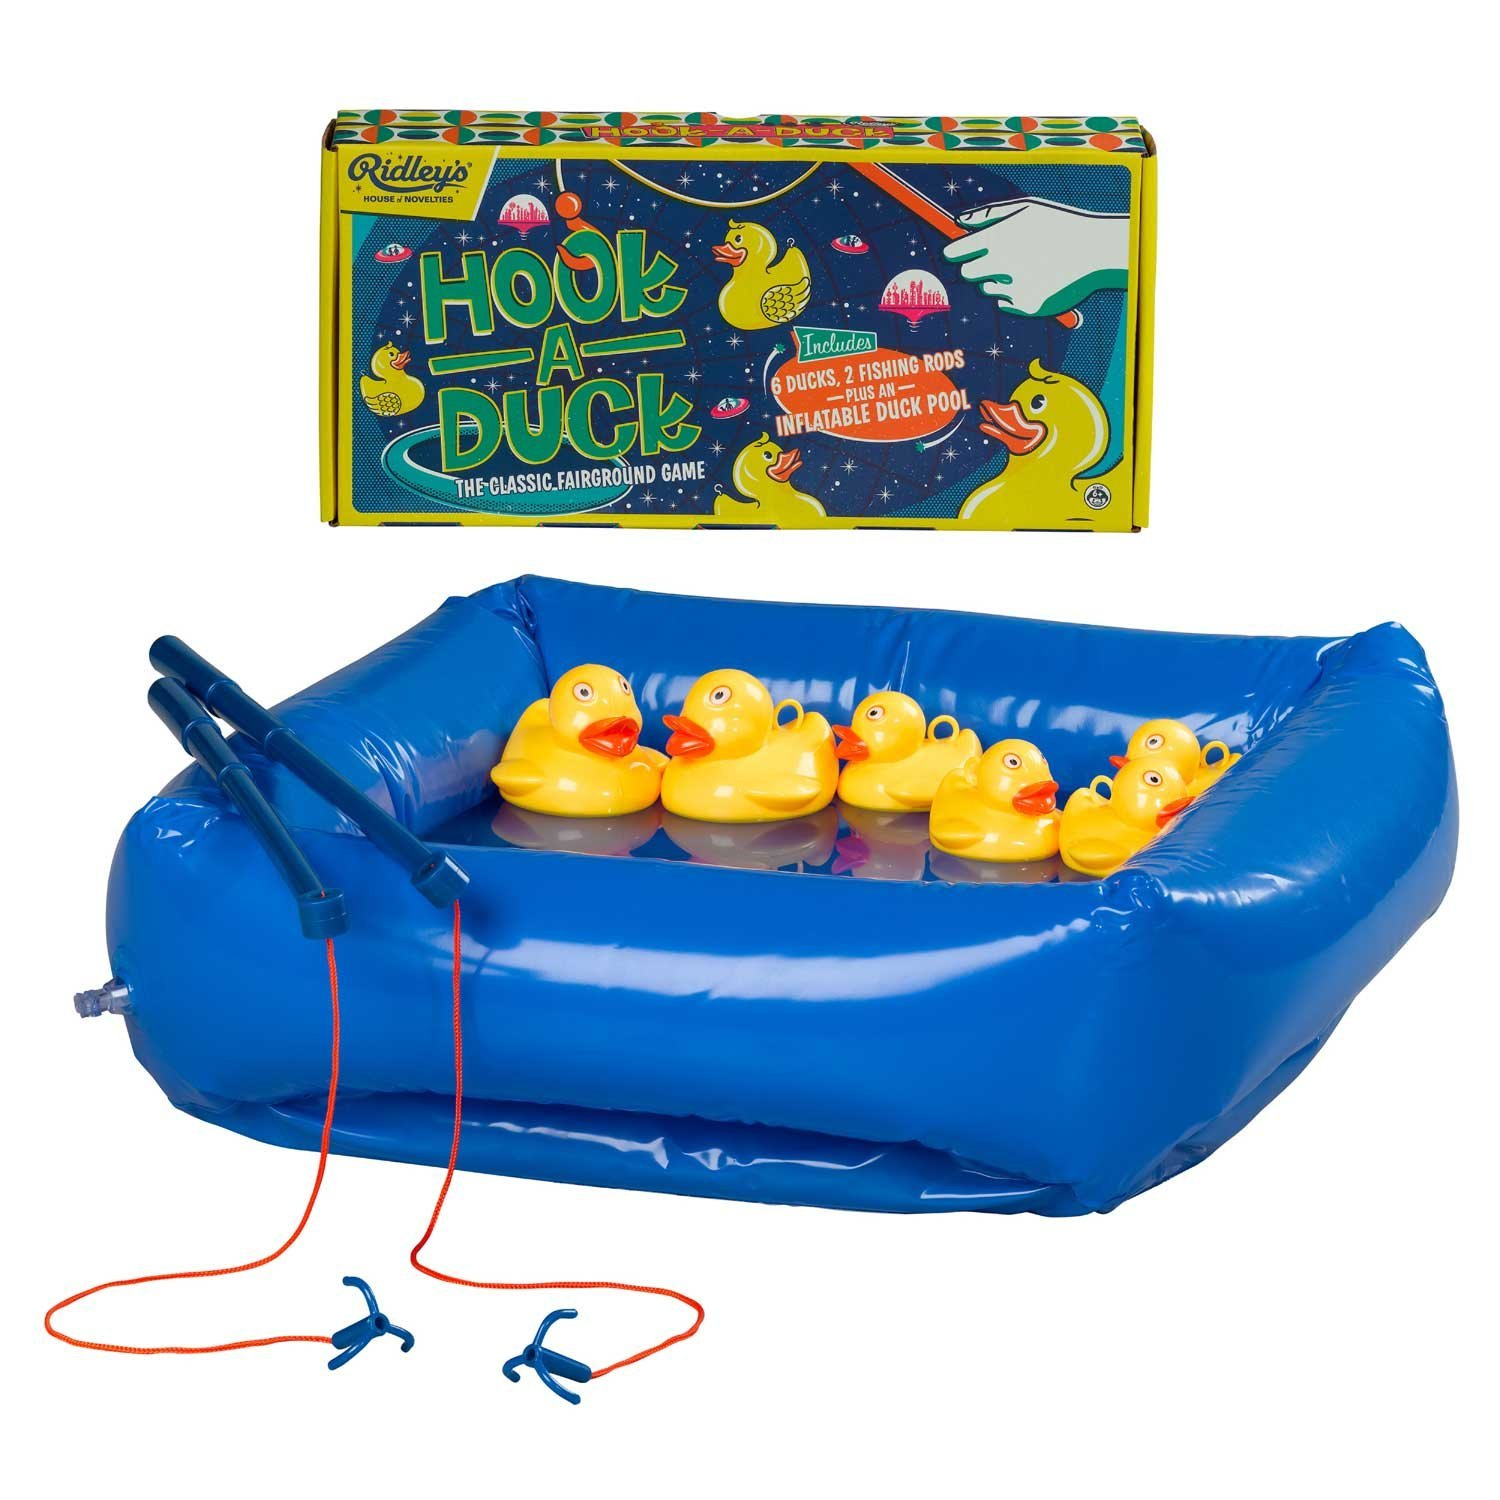 Ridley's Outdoor Hook a Duck Game with Inflatable Pool